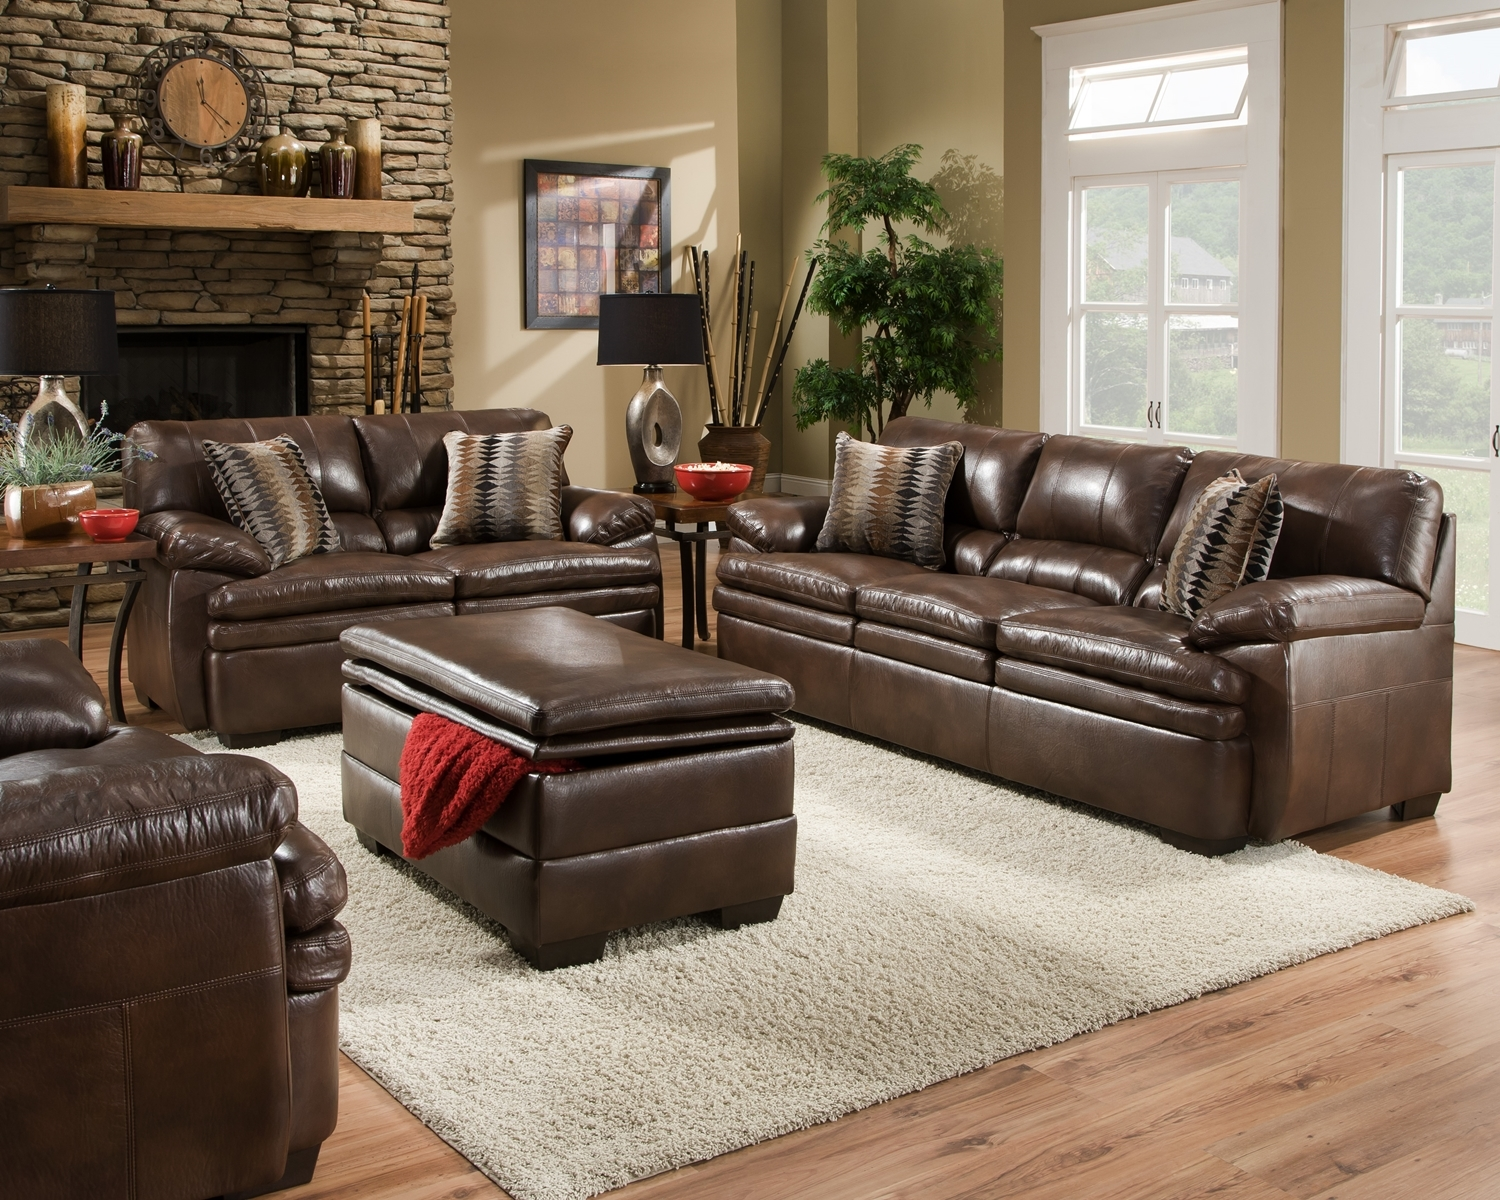 ... Leather Sofa Set Casual Living Room Furniture w/ Accent Pillows  eBay